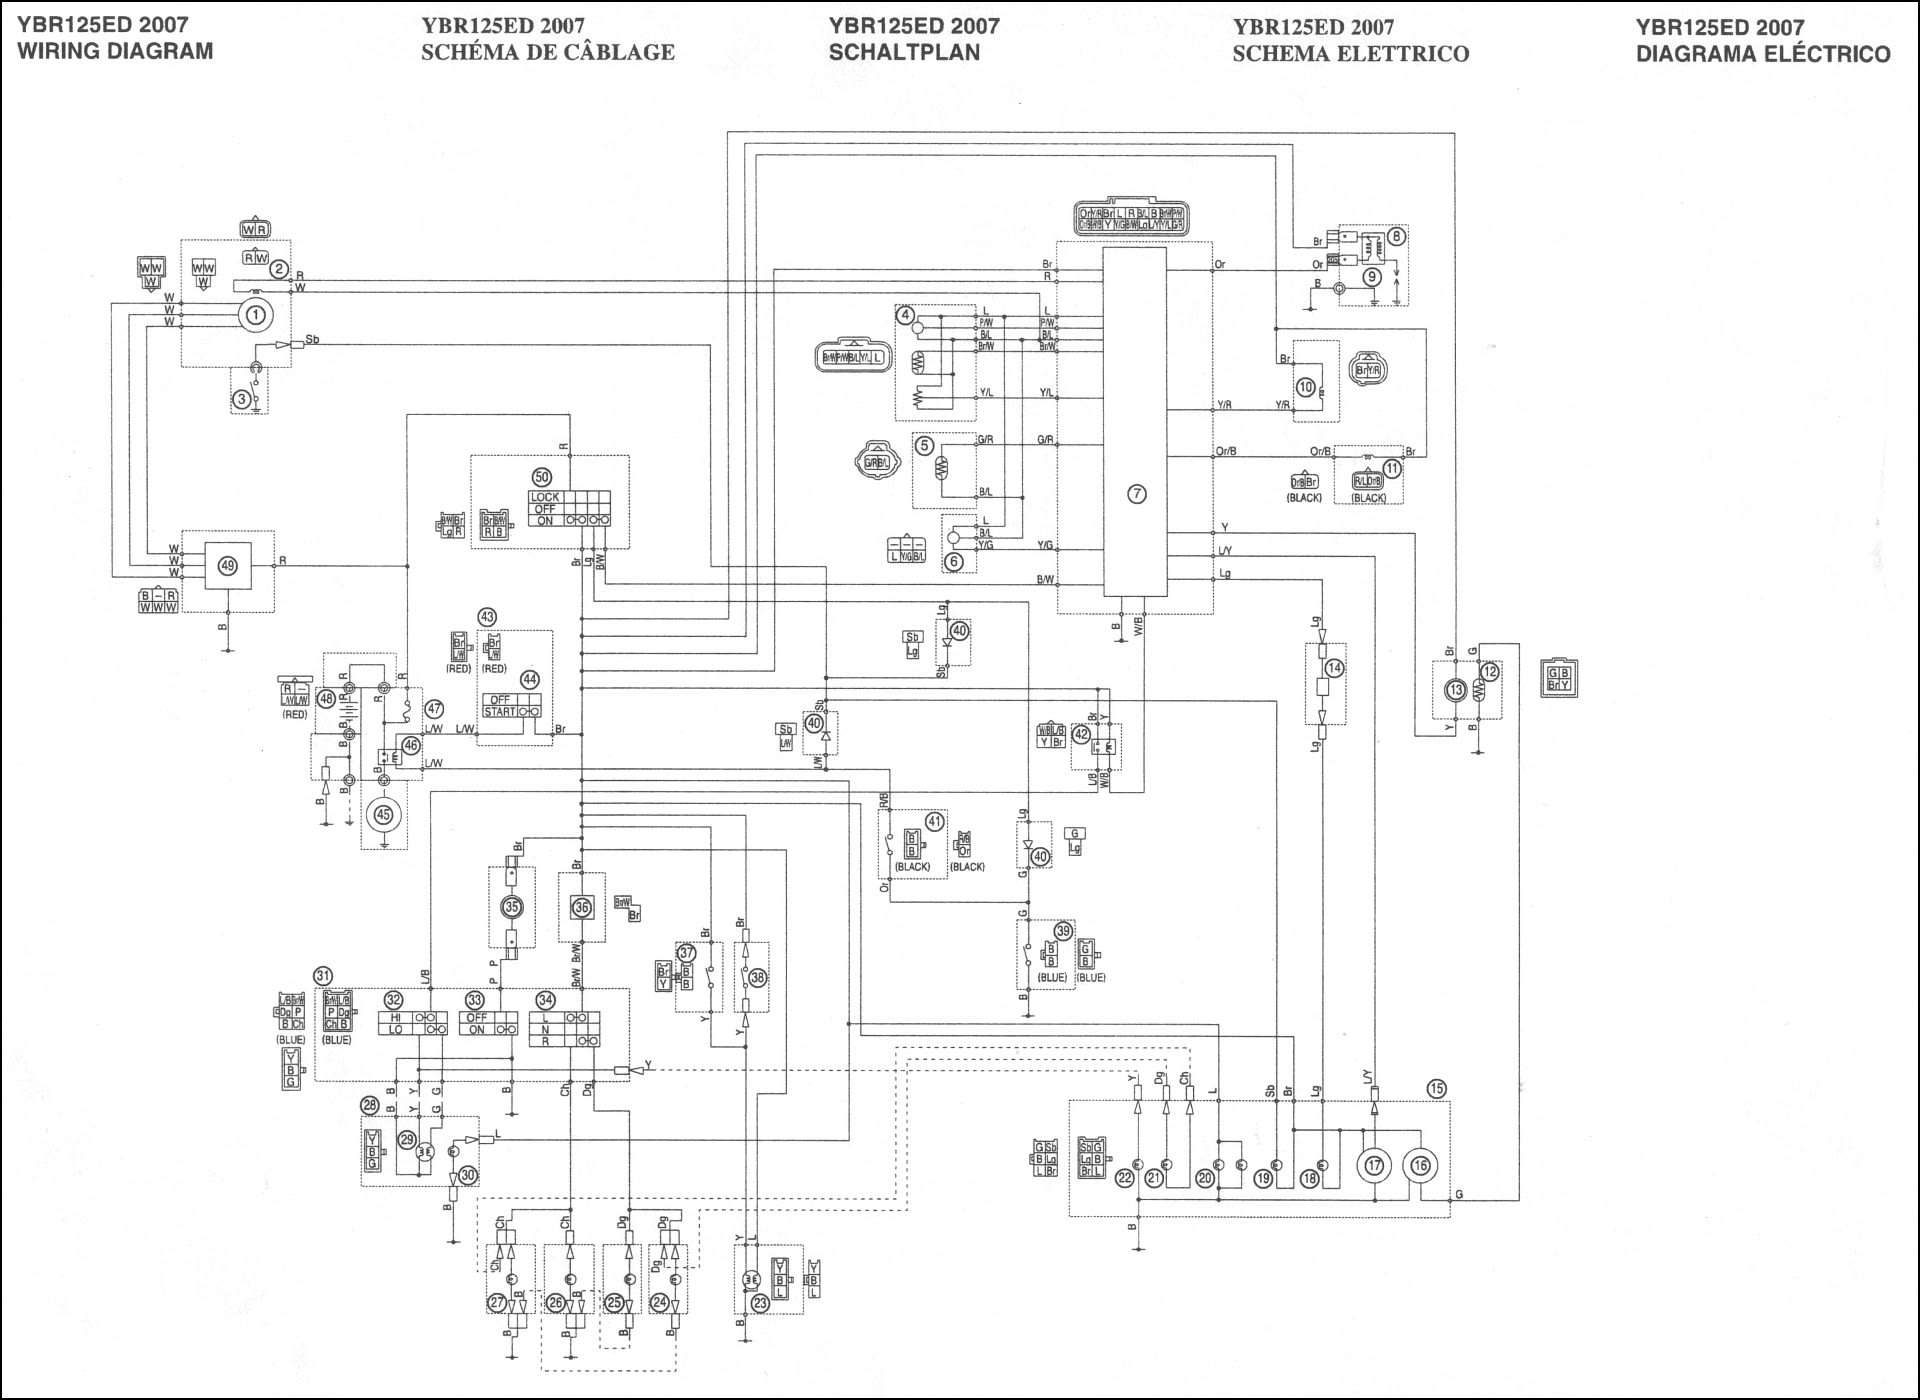 Ysr50 Wiring Diagram Page 2 And Schematics Yamaha Tt500 Ysr Race Product Diagrams Source Parts Accessories Racing Fi U30e2 U30c7 U30eb U306e U914d U7dda